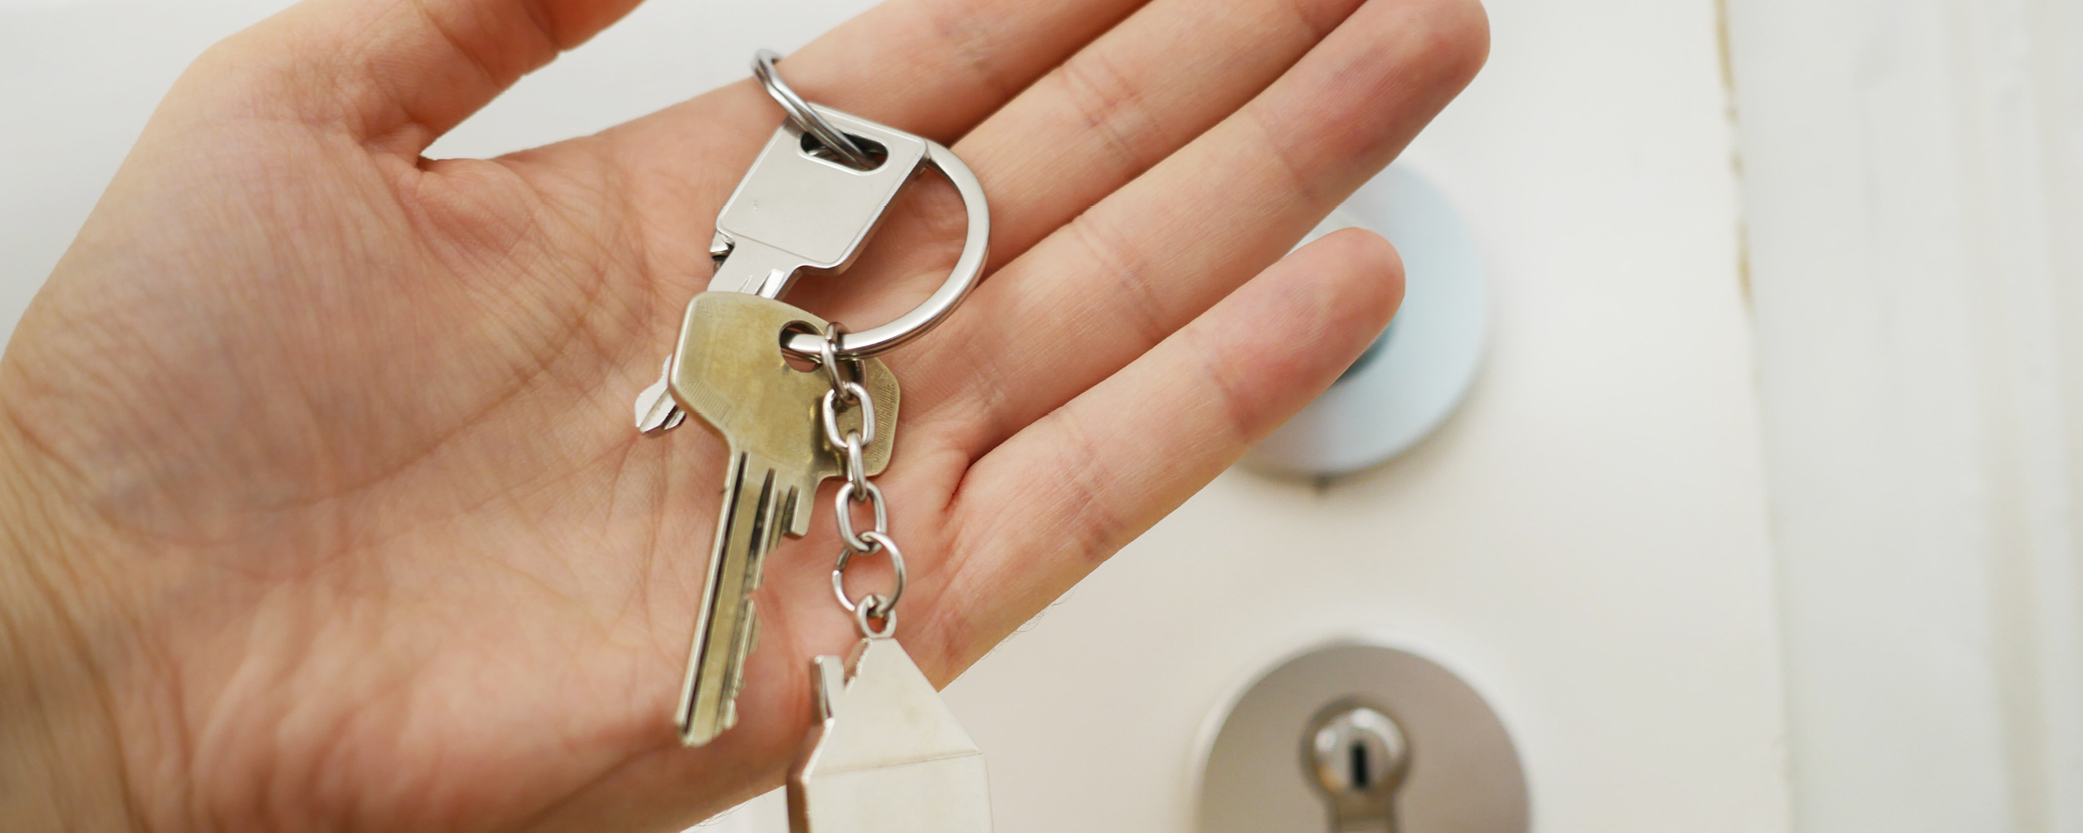 A hand holds a set of apartment keys.